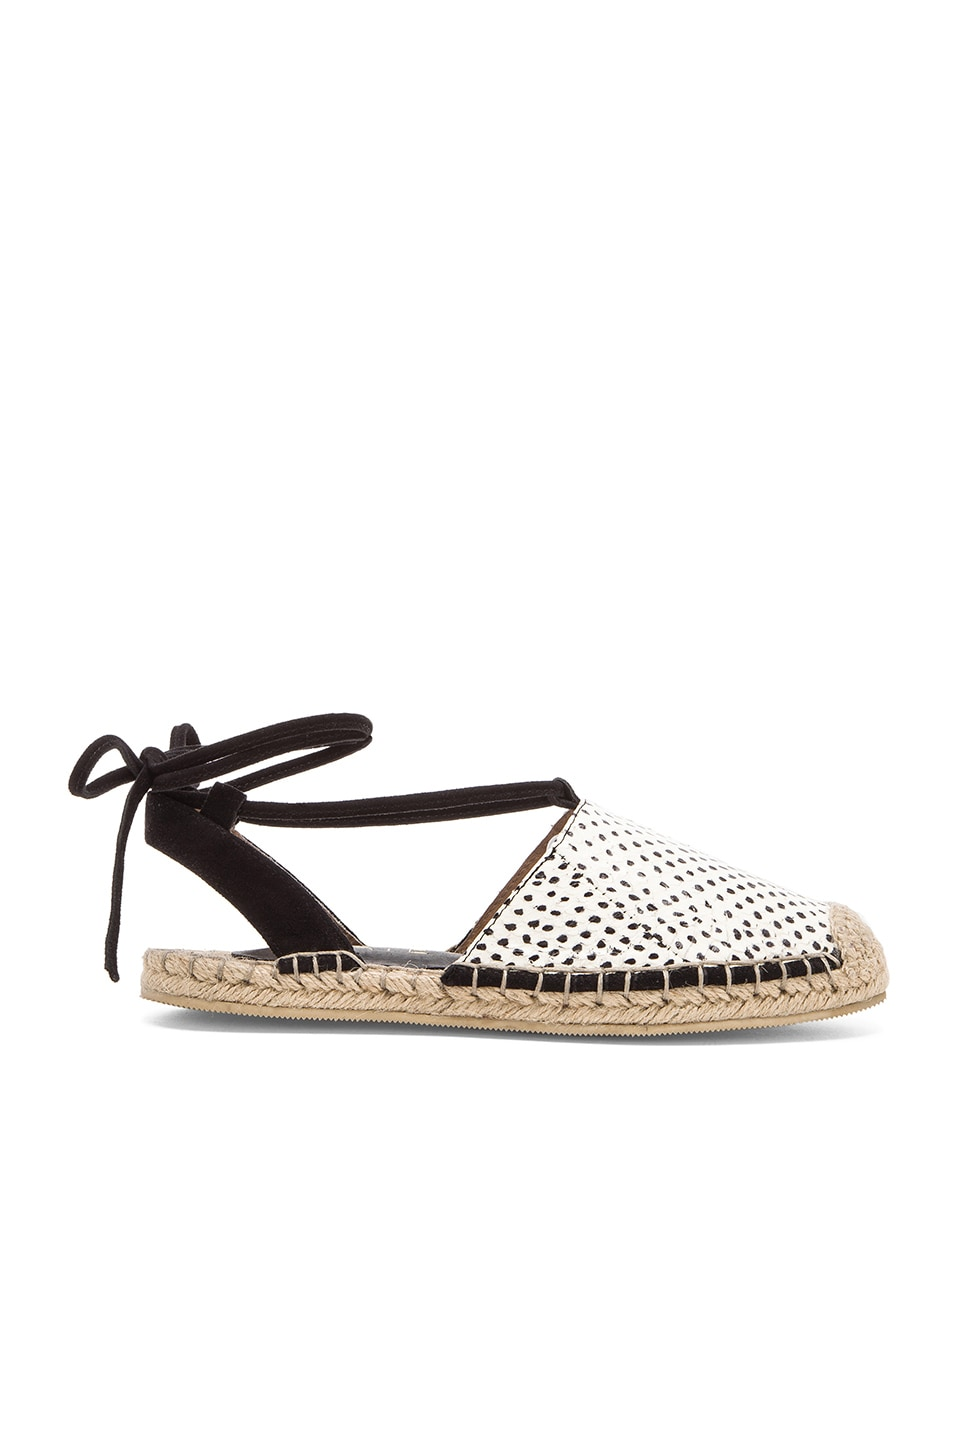 RAYE Dani Espadrille in Black & White Dot